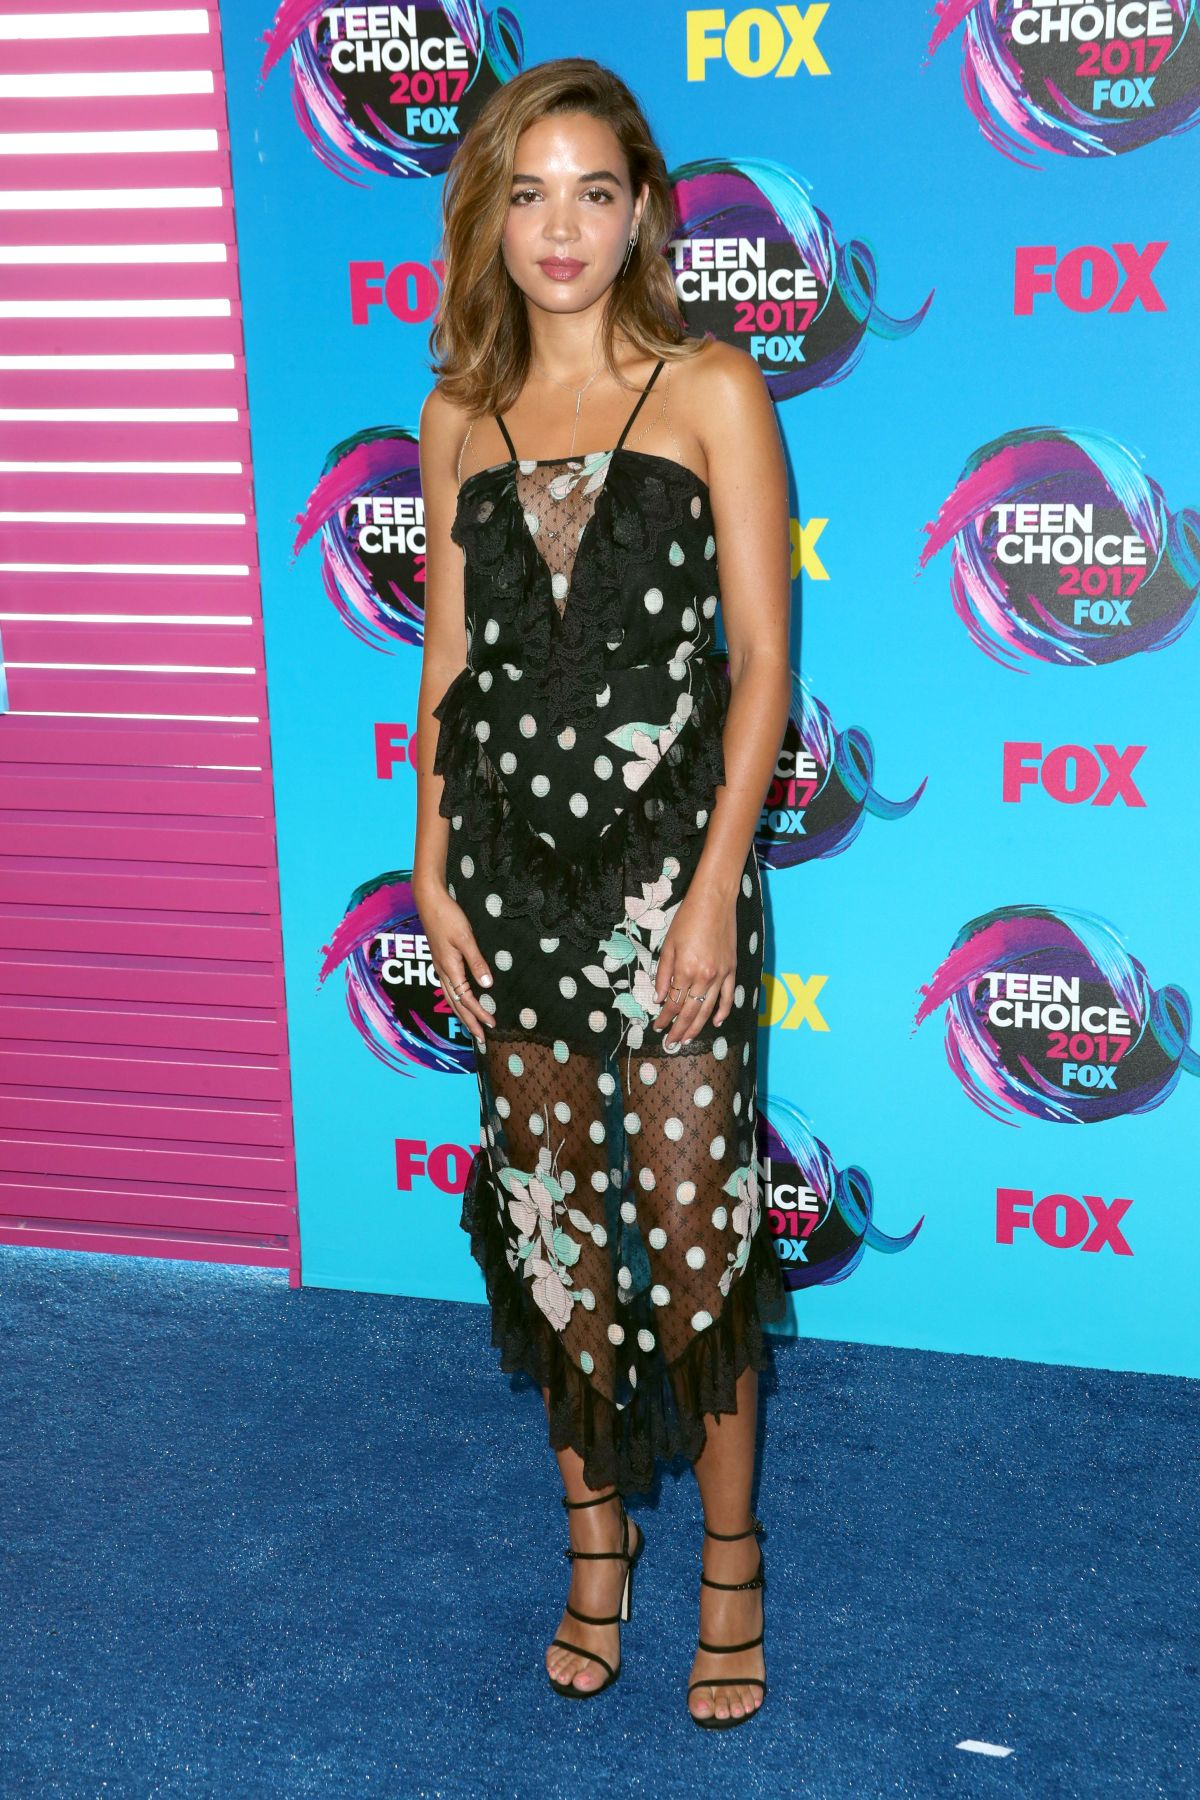 GEORGIE FLORES at Teen Choice Awards 2017 in Los Angeles 08/13/2017